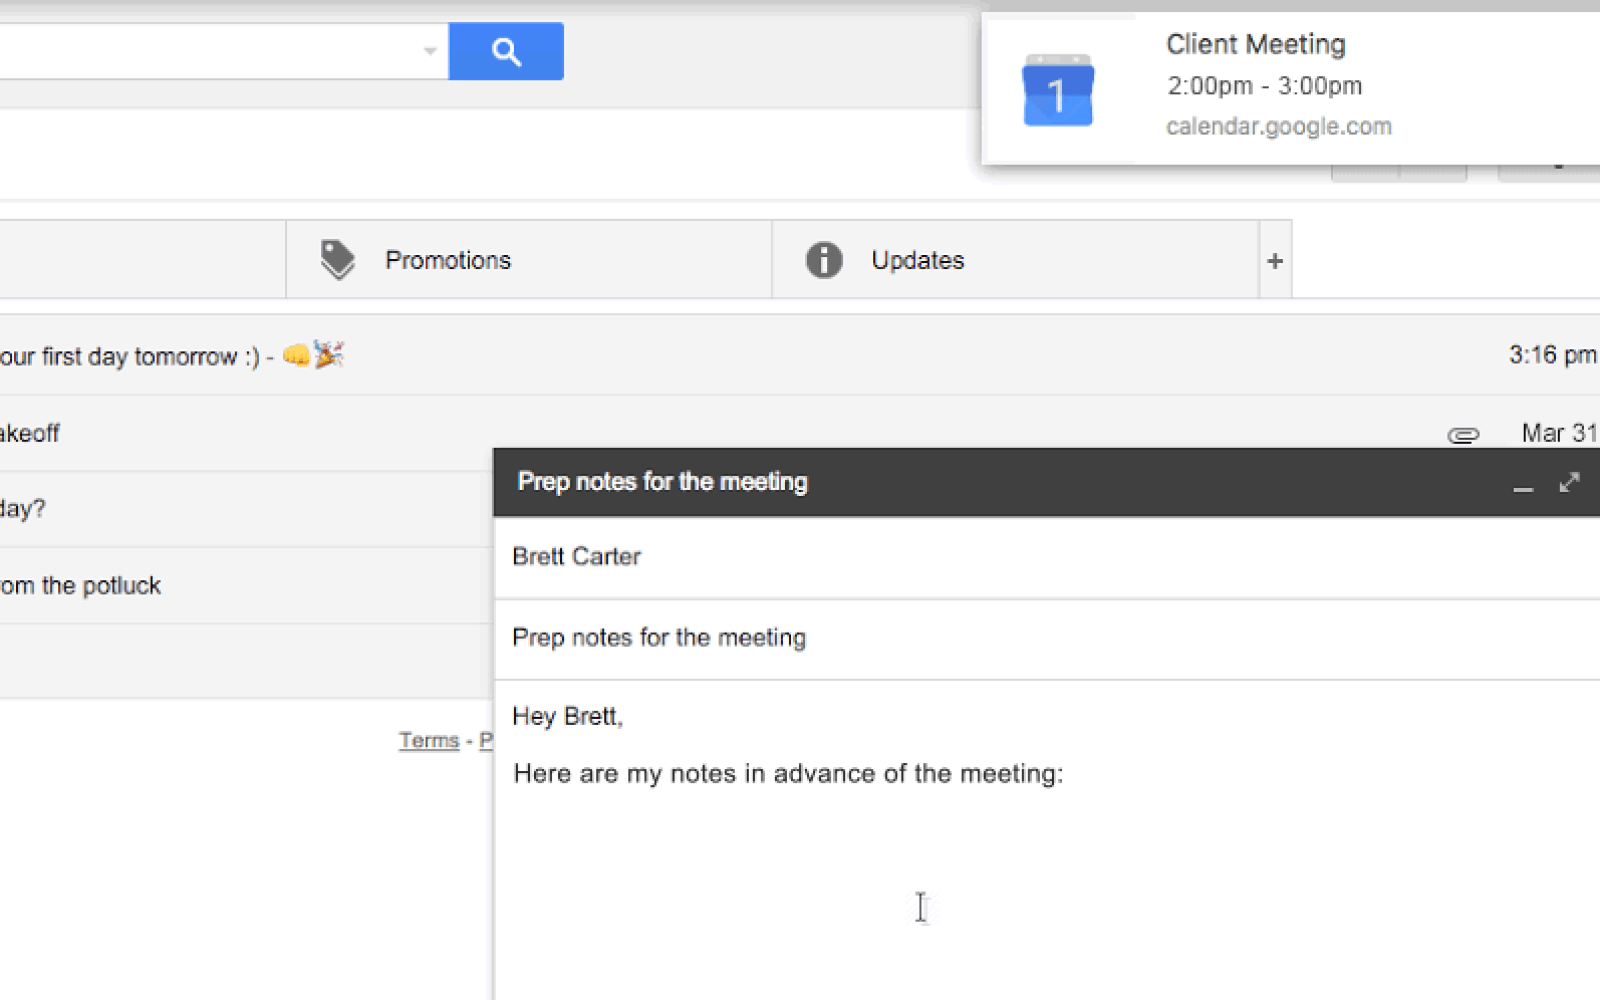 Google Calendar now sends web notifications to remind you of